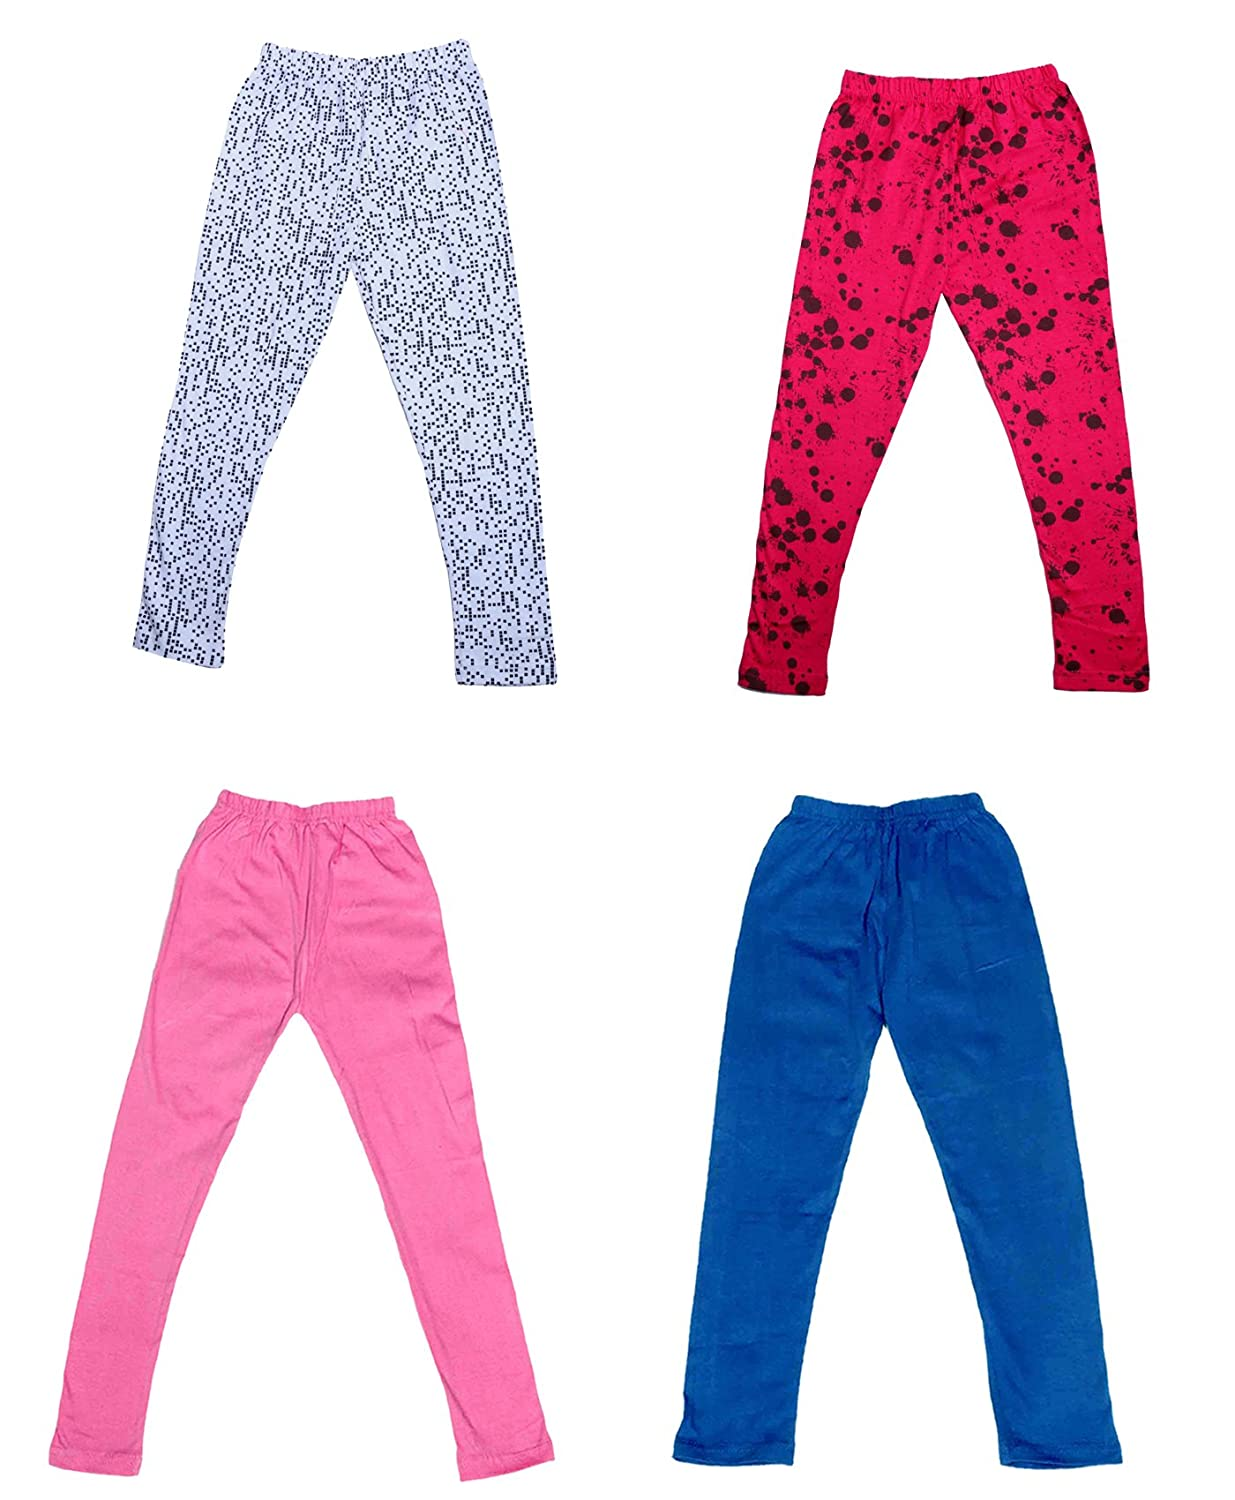 Indistar Girls 2 Cotton Solid Legging Pants and 2 Cotton Printed Legging Pants /_Multicolor/_Size-7-8 Years/_71408092021-IW-P4-30 Pack Of 4